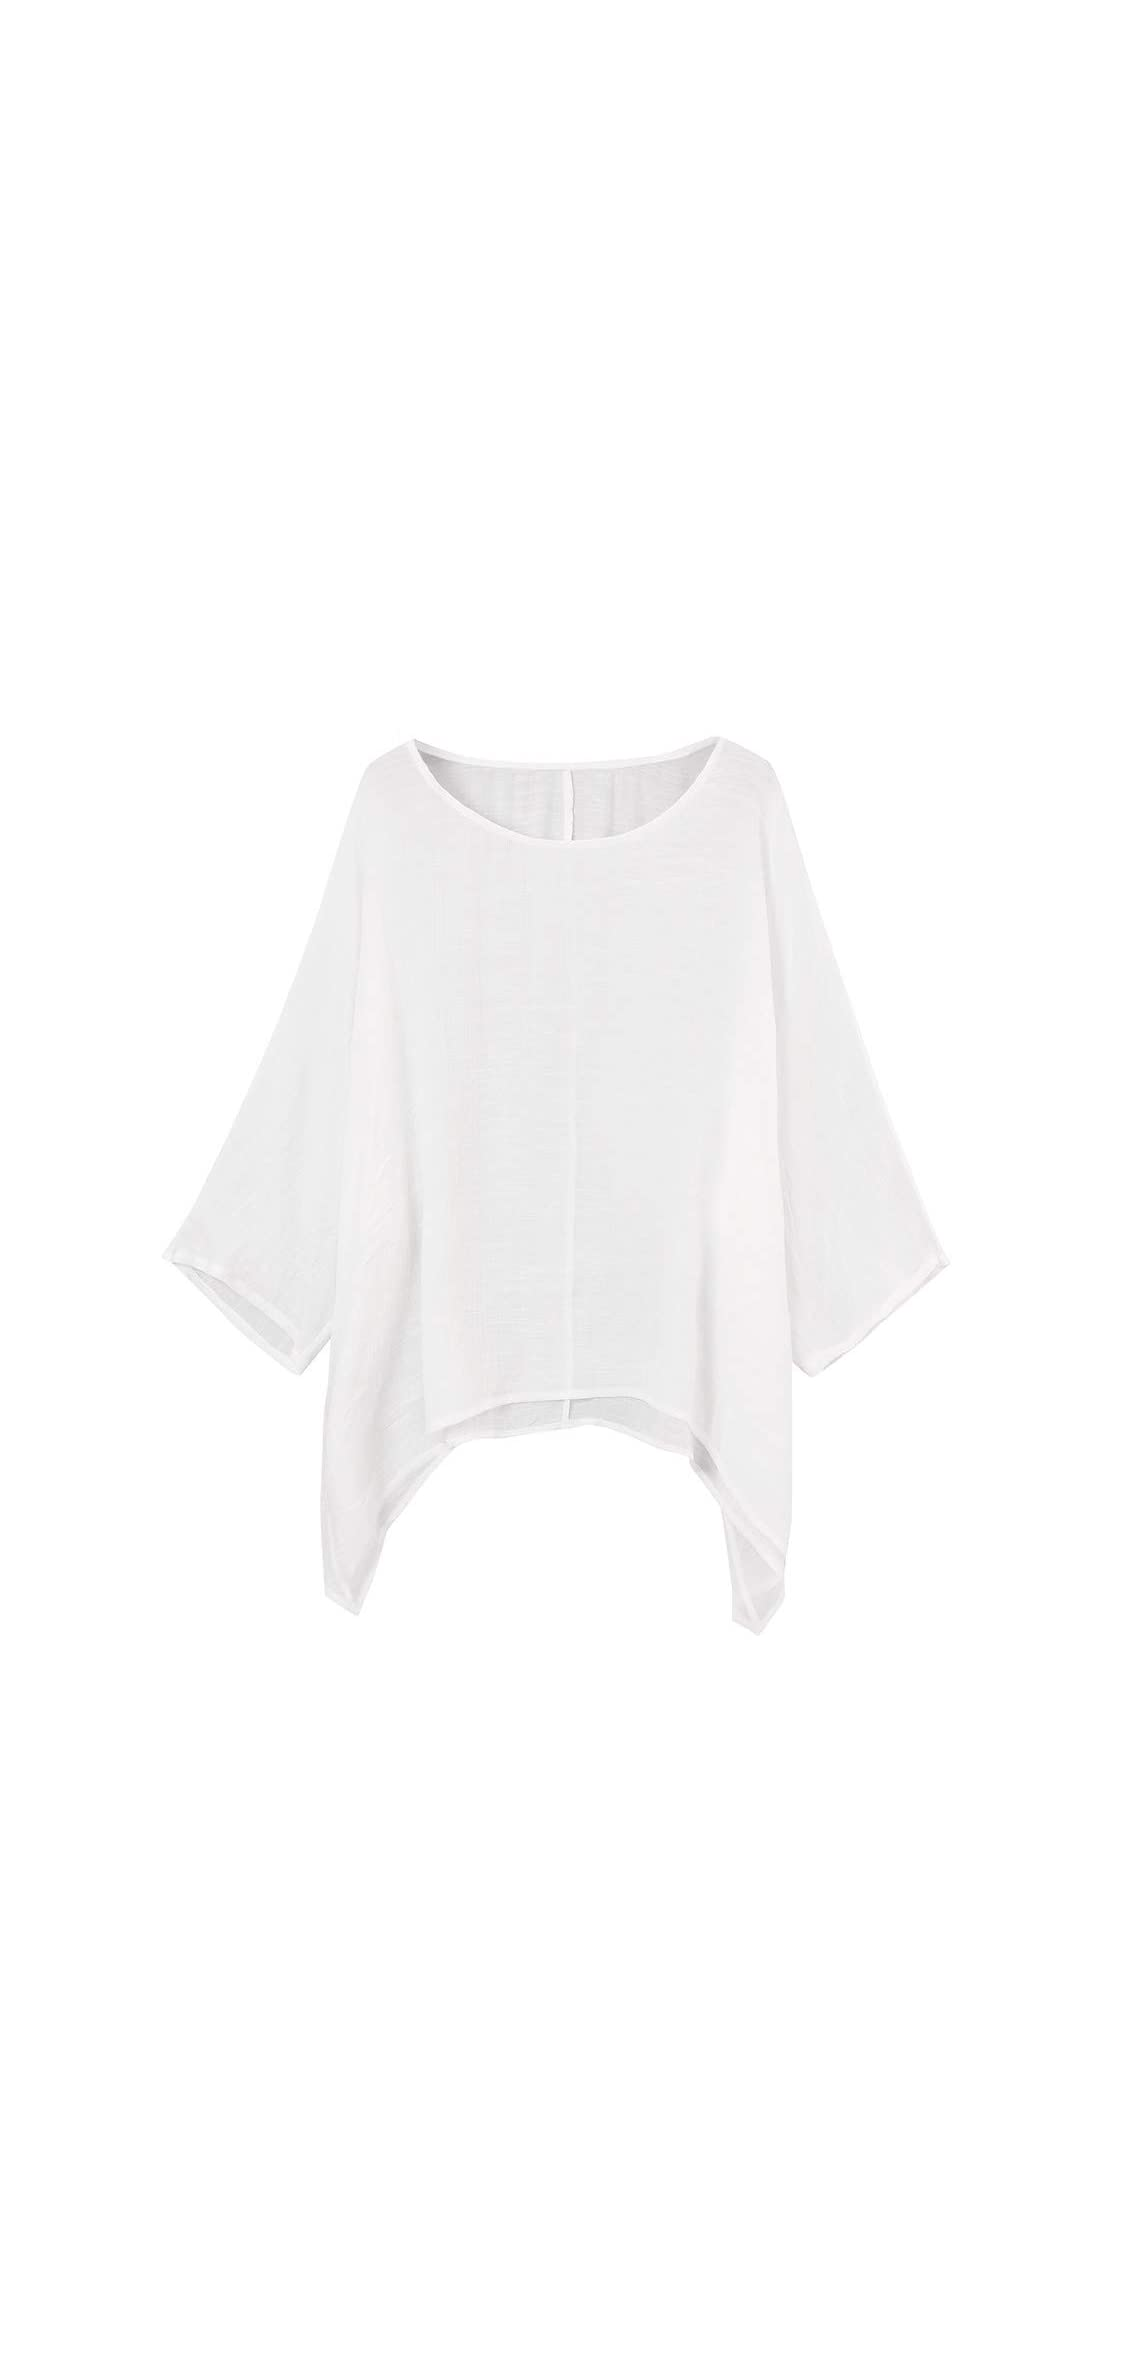 Women's Blouse Daily Casual Plus Size Loose Tops Cotton